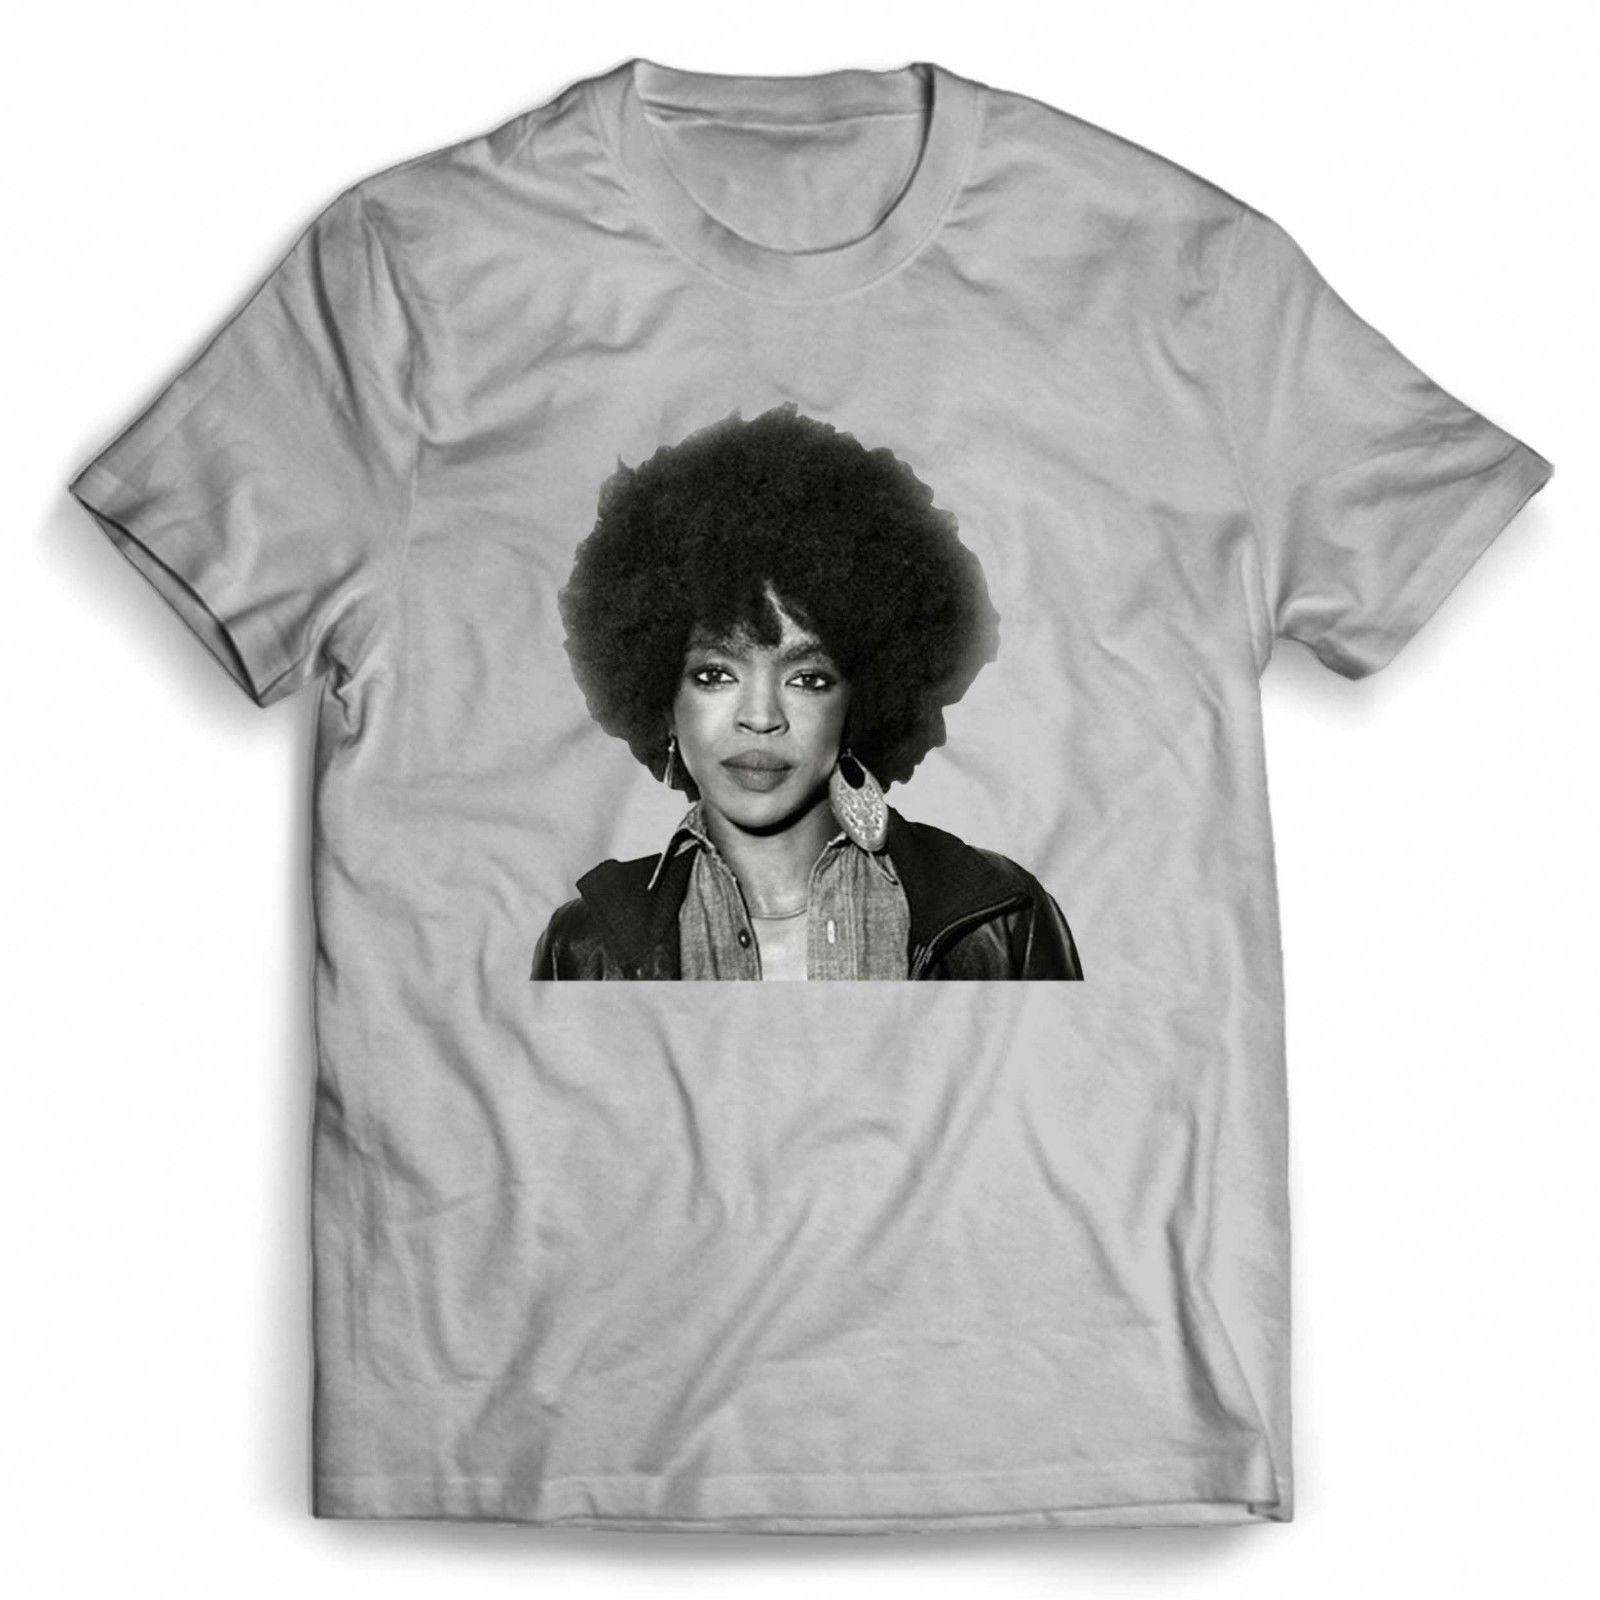 52c49b7b Lauryn Hill Hair Man / Woman T Shirt Colour Jersey Print T Shirt Jersey  Print T Shirt White T Shirt Designs Awesome T Shirt Sites From Nikecup, ...